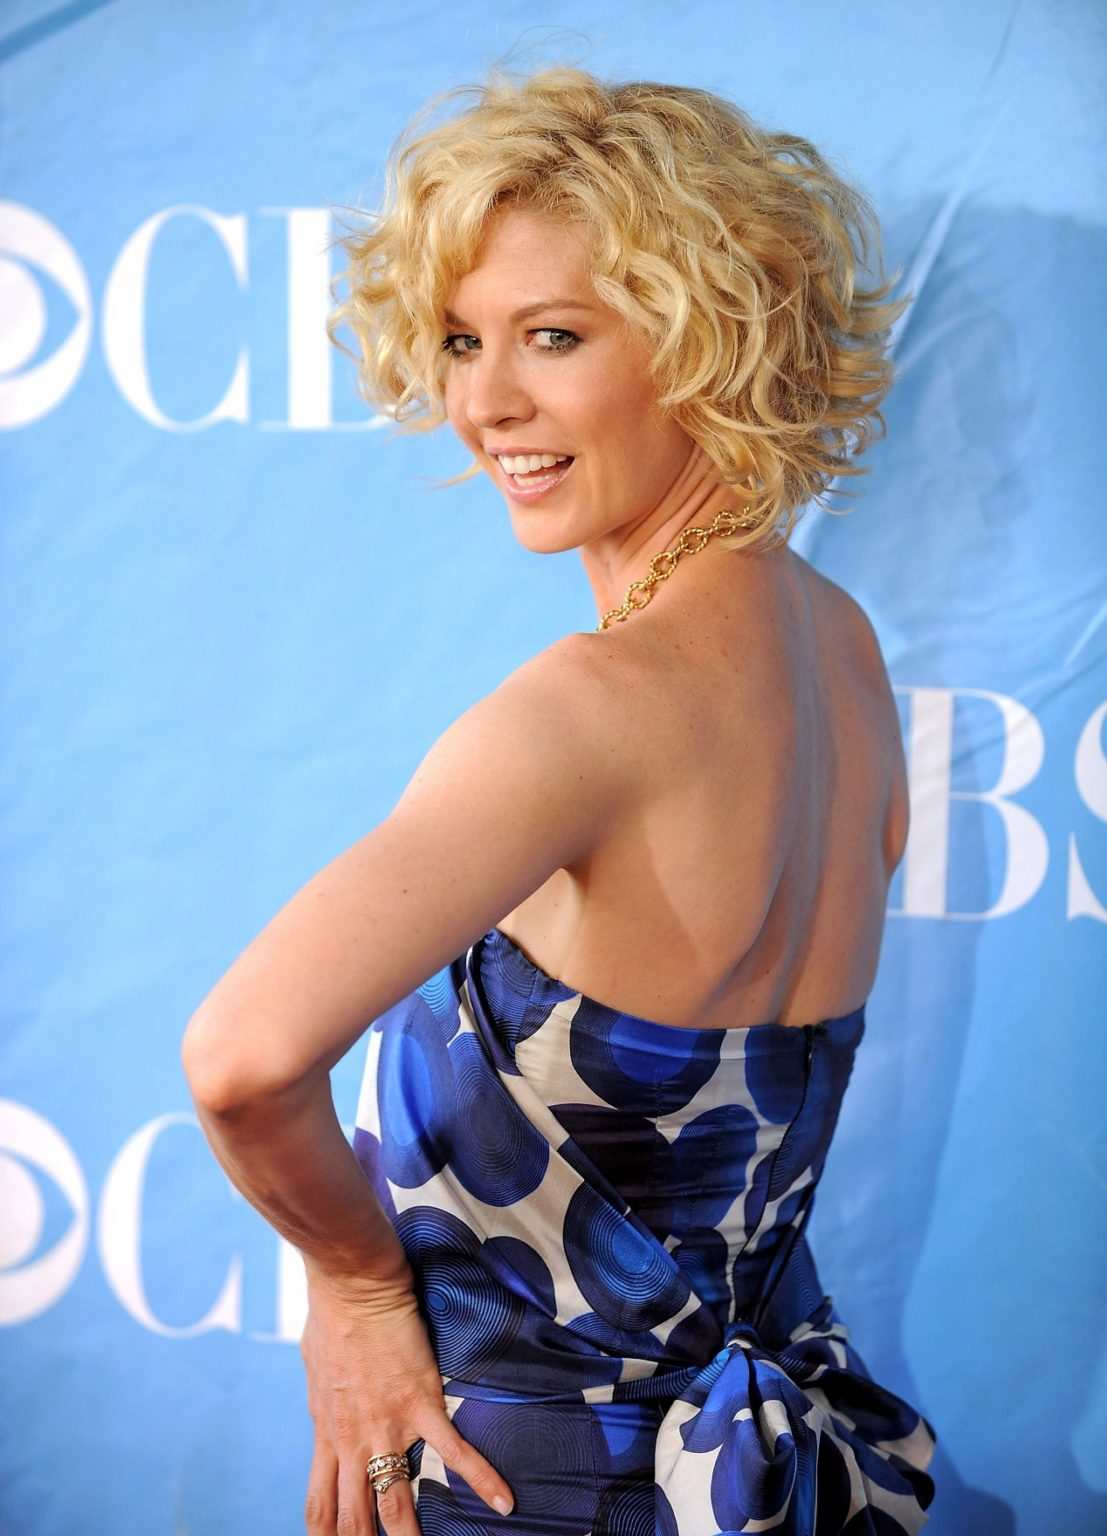 Jenna Elfman Shares Her Passion For Dance Through the